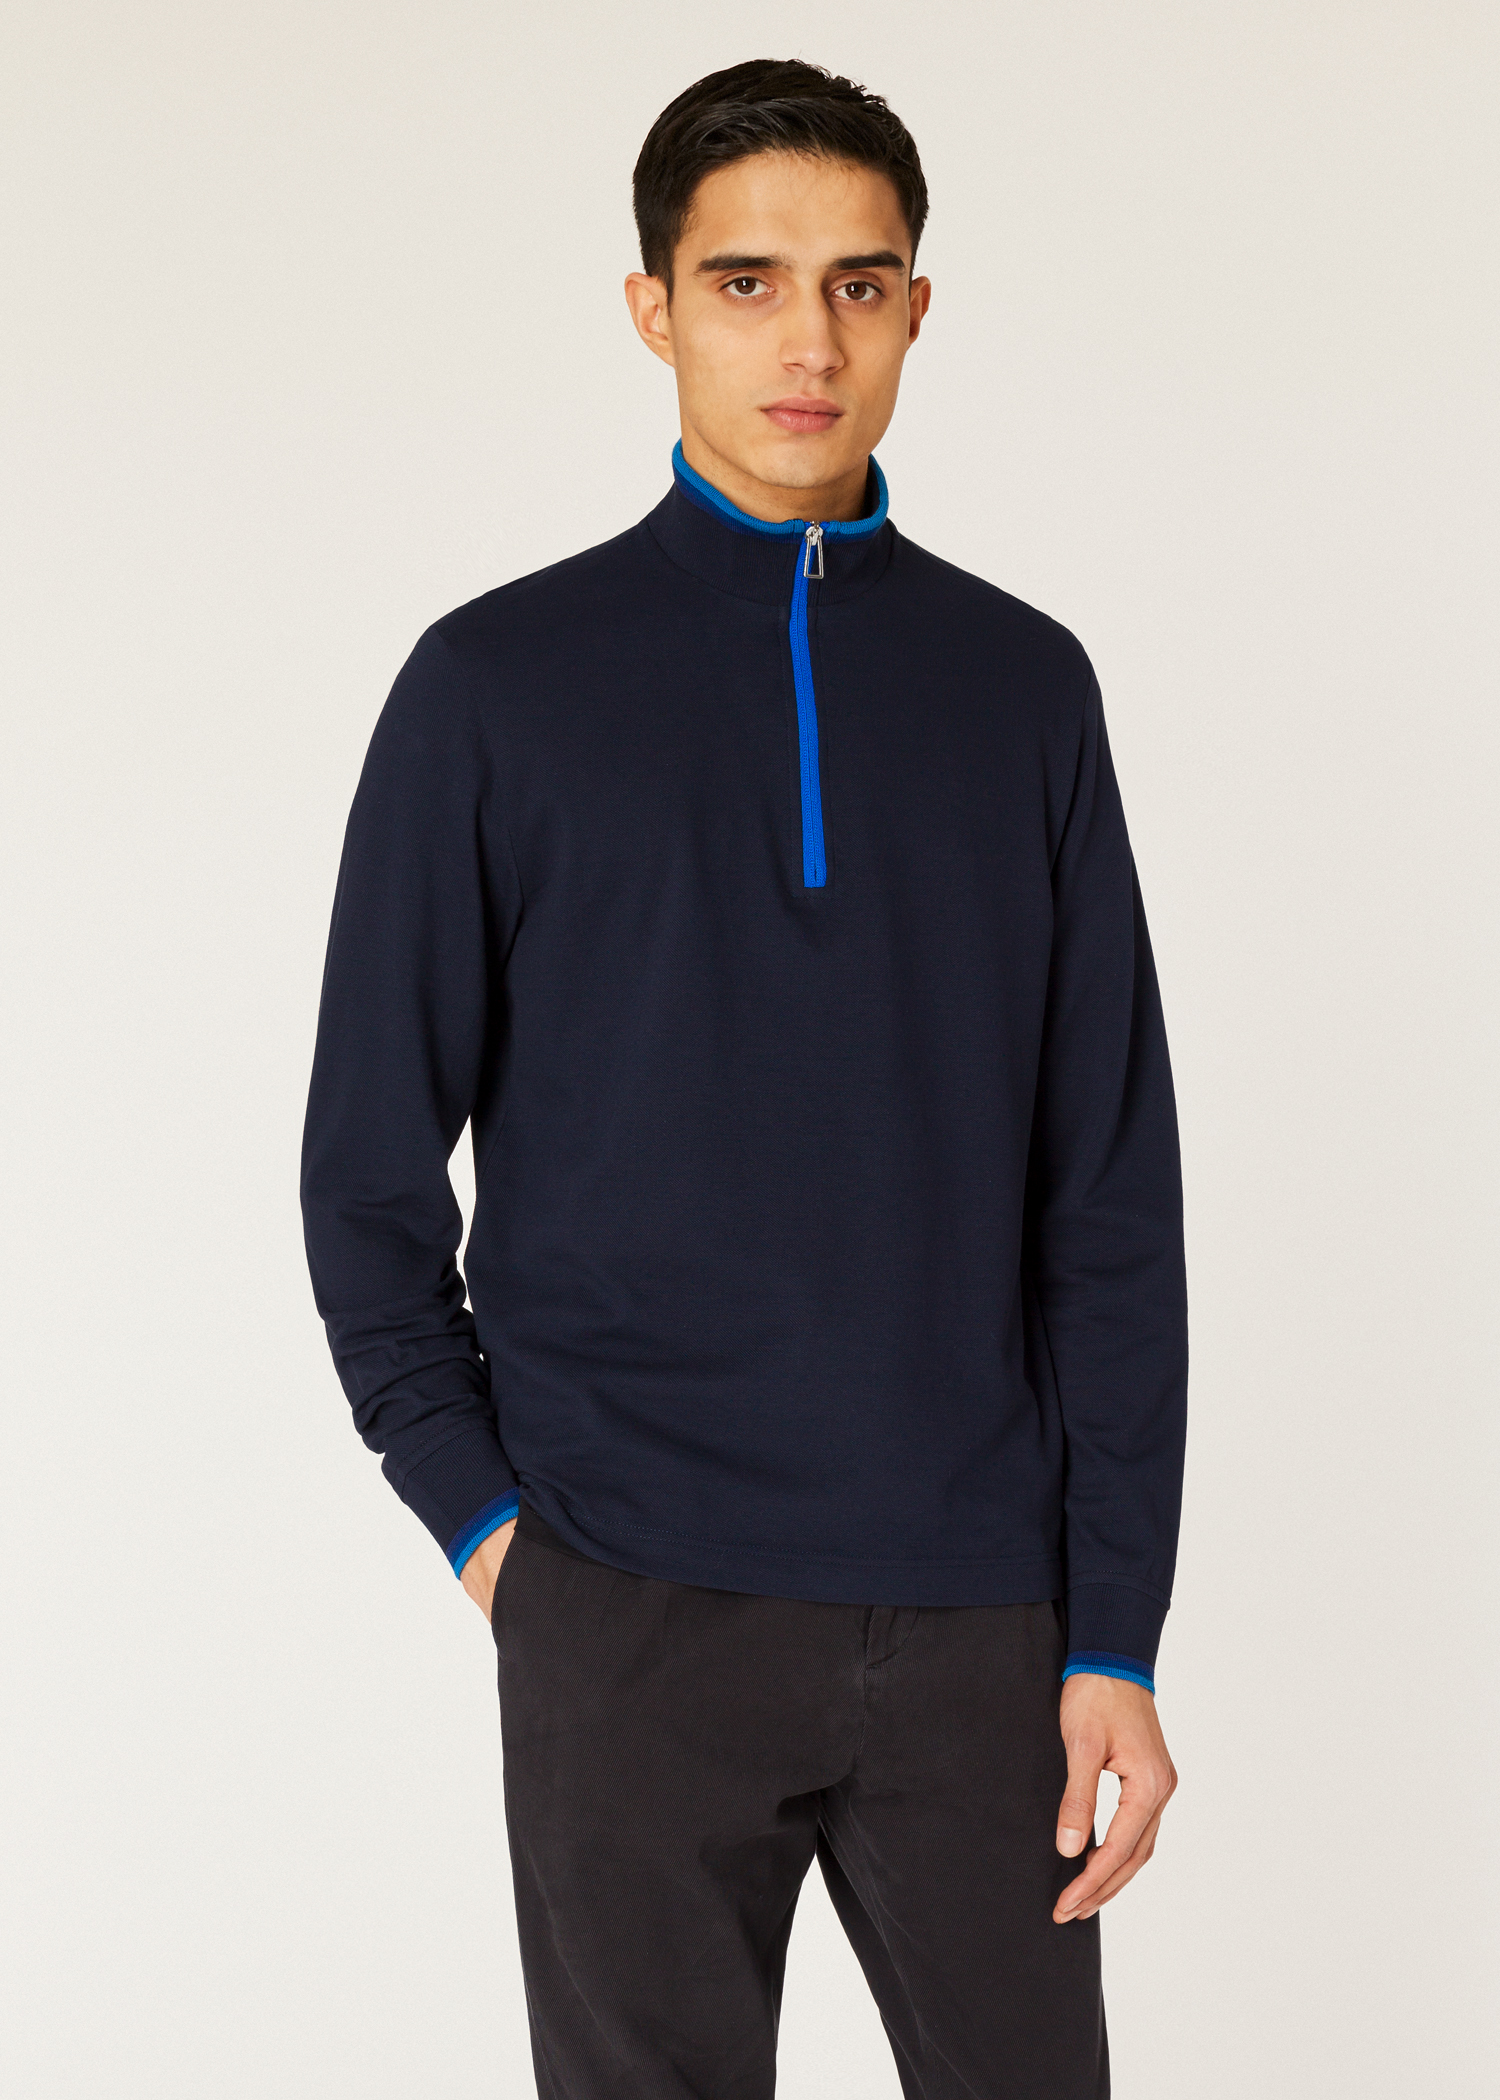 bf46119885d10a Model front close up - Men's Navy Half-Zip Cotton Top With Tonal Tipping  Paul